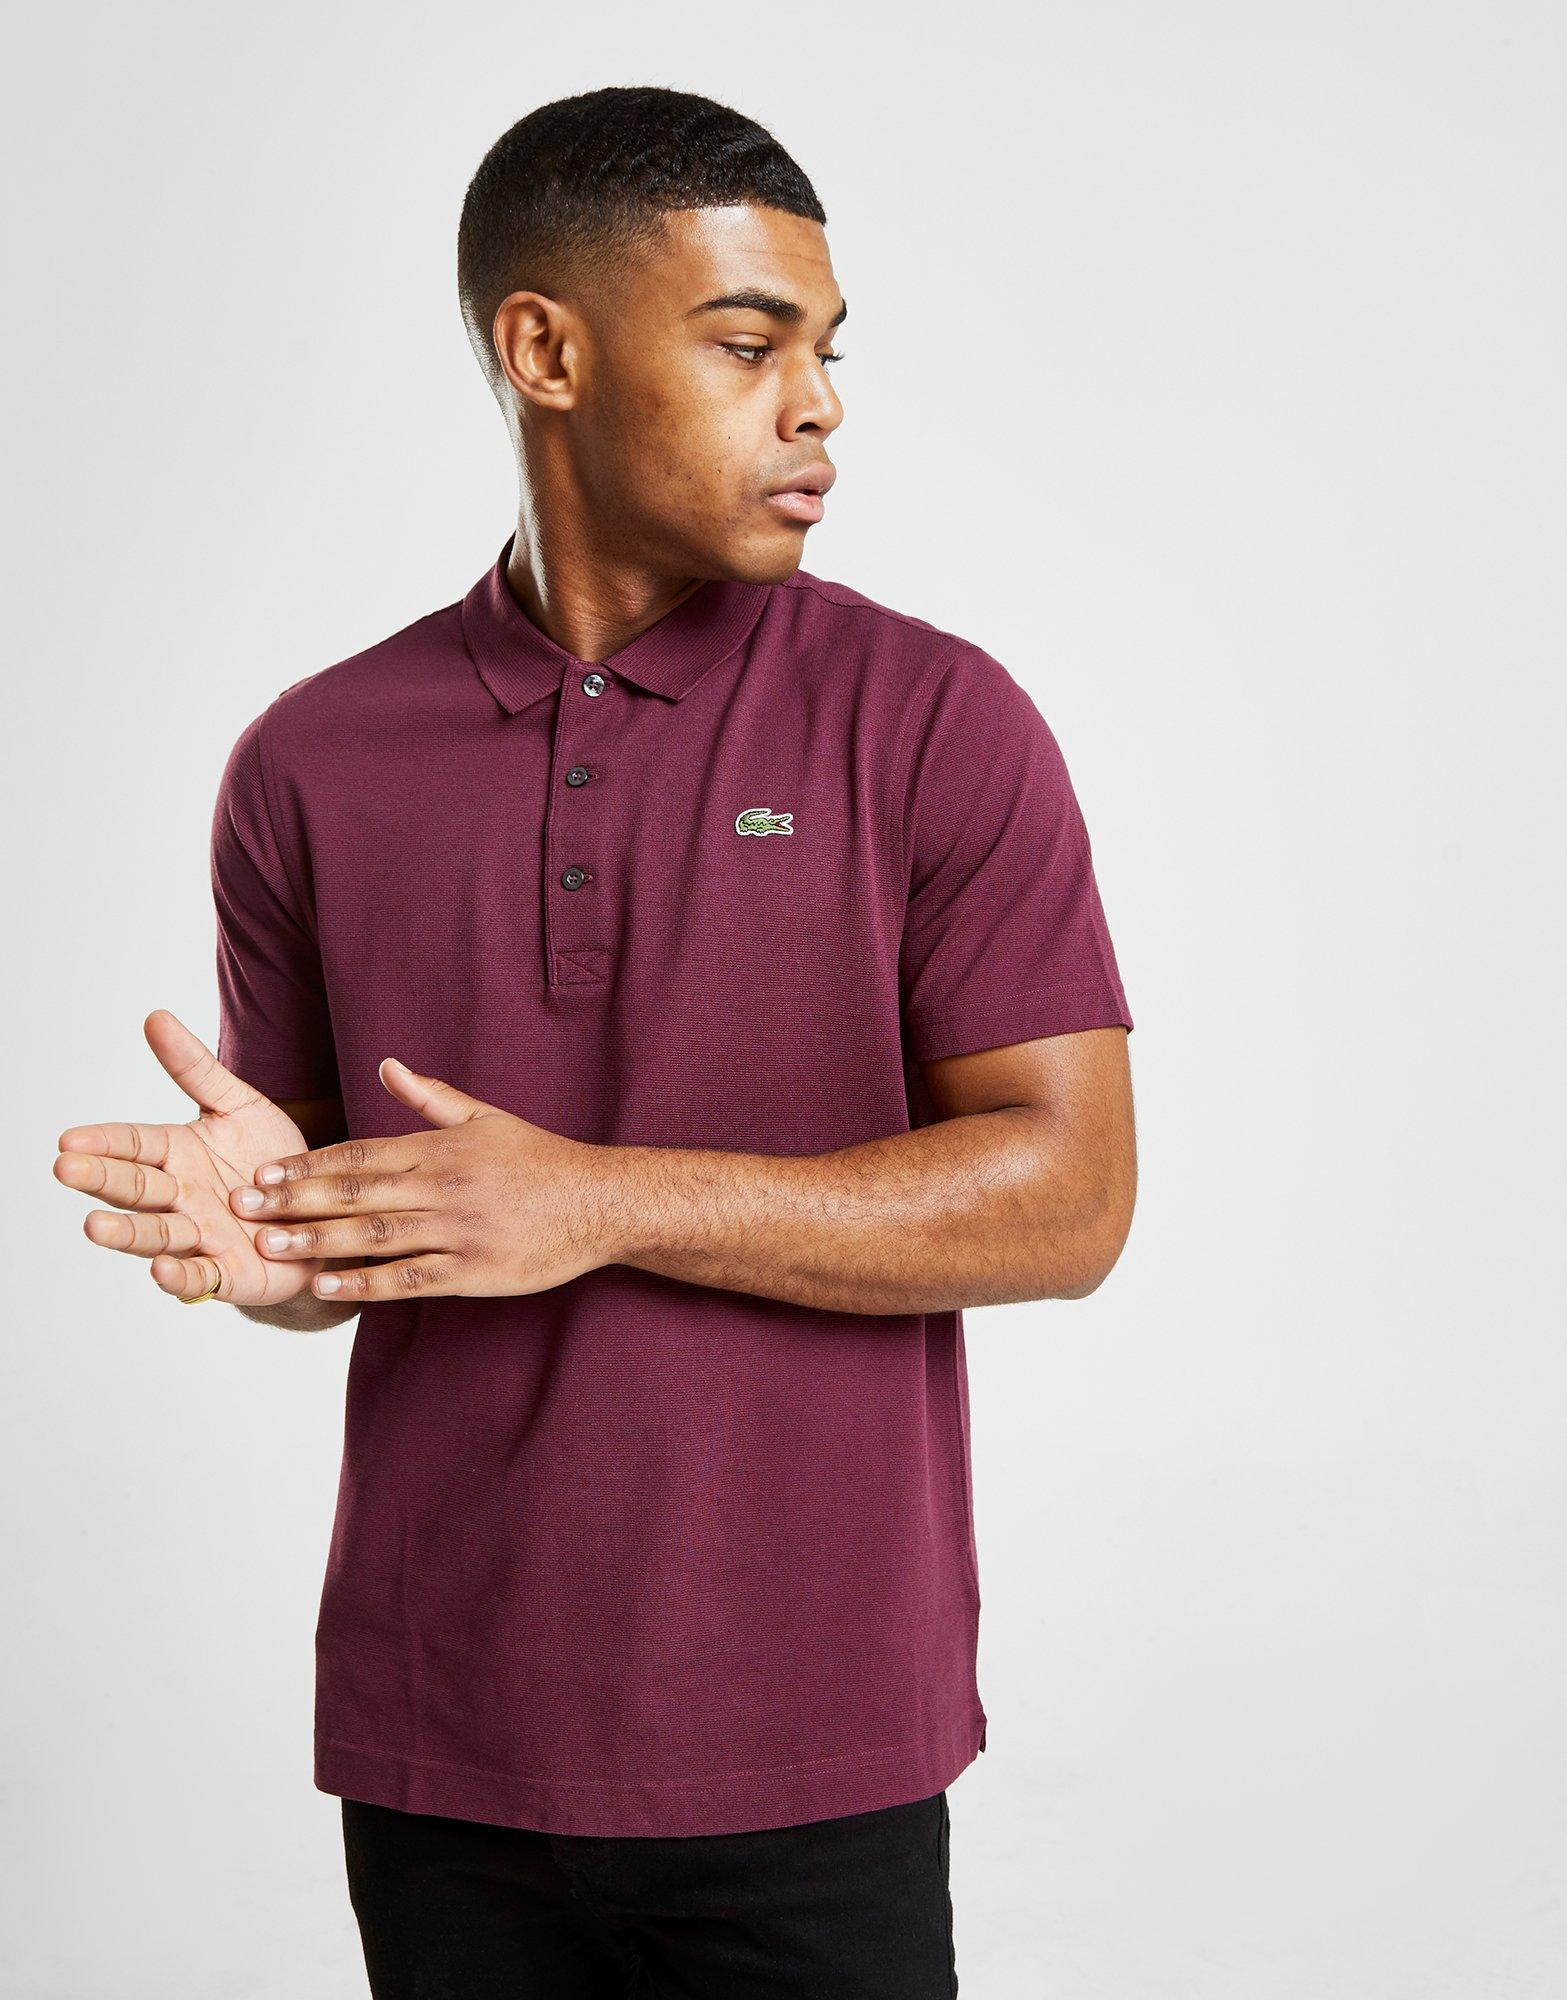 a9989cd7d Lyst - Lacoste Alligator Short Sleeve Polo Shirt in Purple for Men